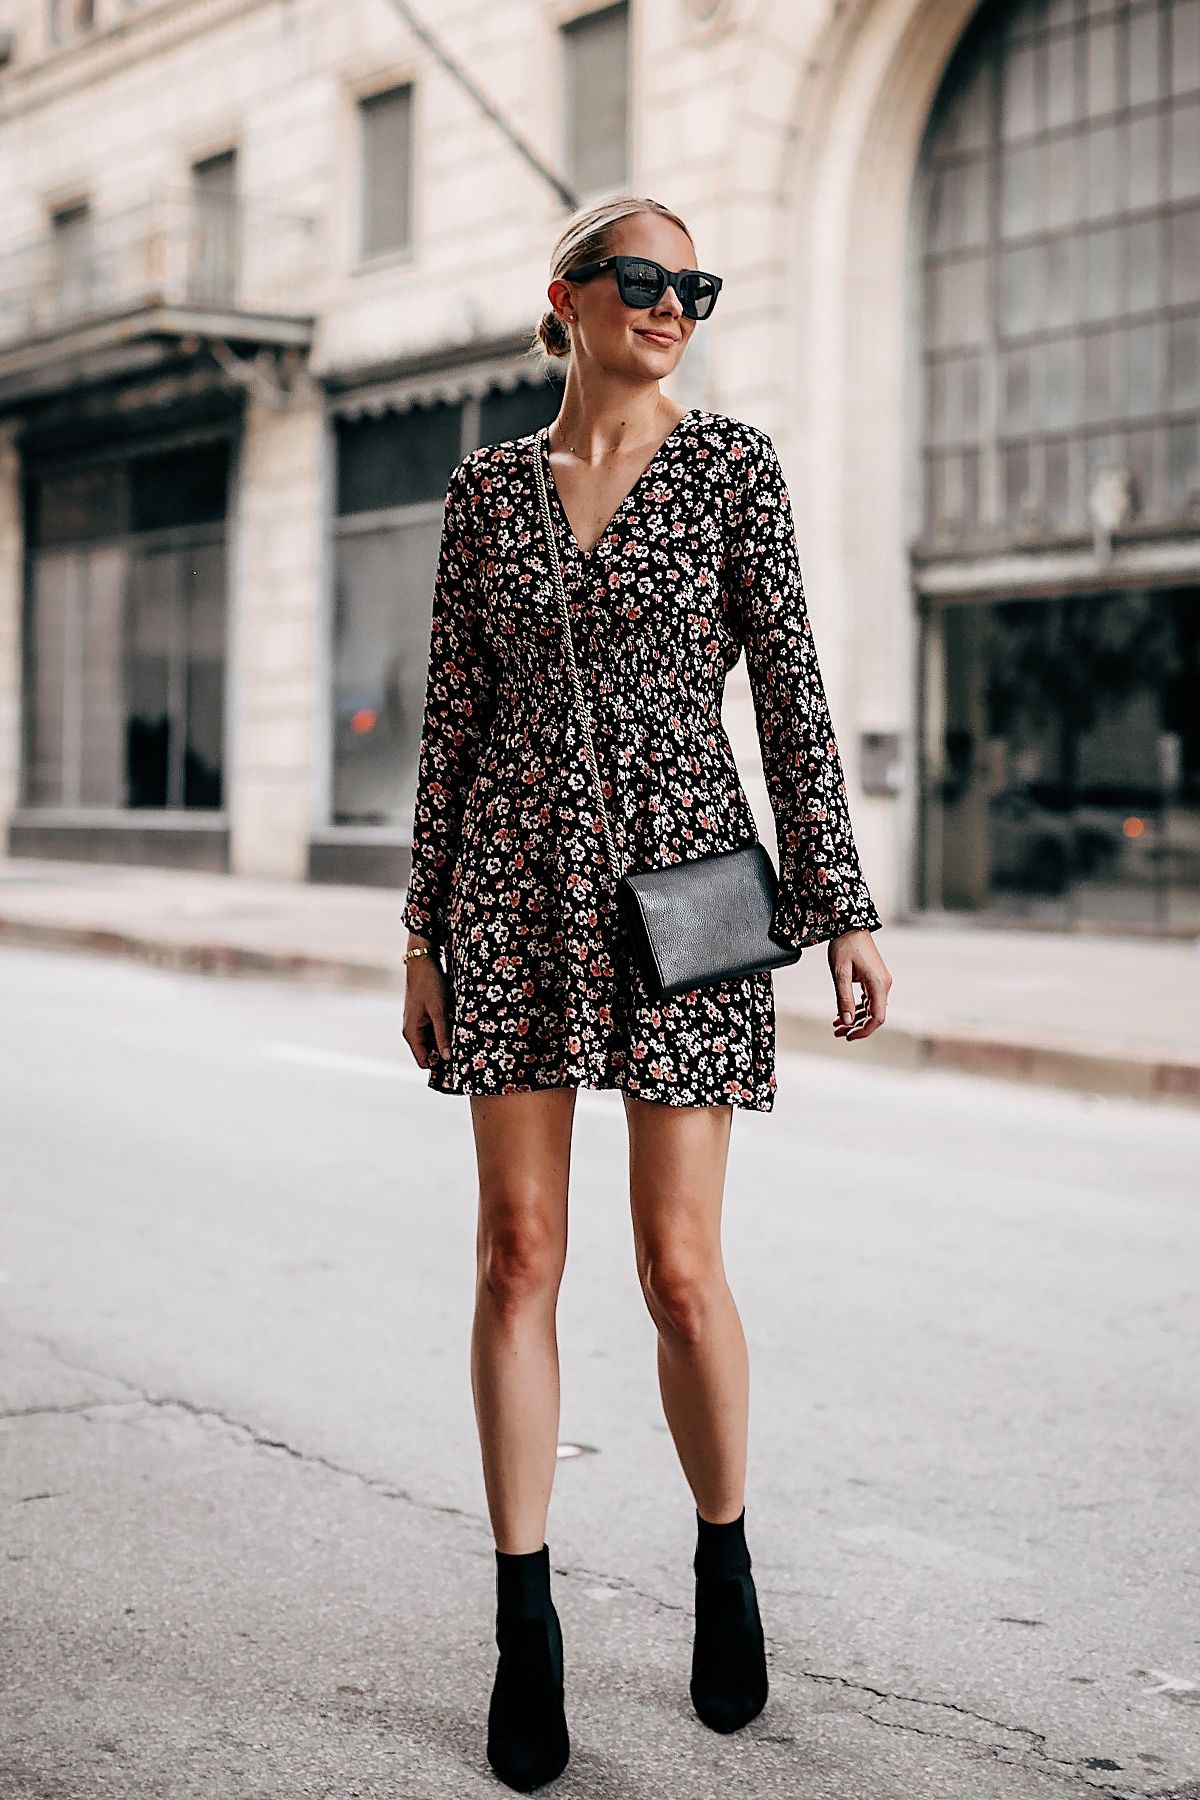 Fall Is Just A Few Short Weeks Away And I M Definitely Ready For It To Be Here It Has Actually Been A Little Chilly Fashion Jackson Fashion Ankle Boots Dress [ 1800 x 1200 Pixel ]